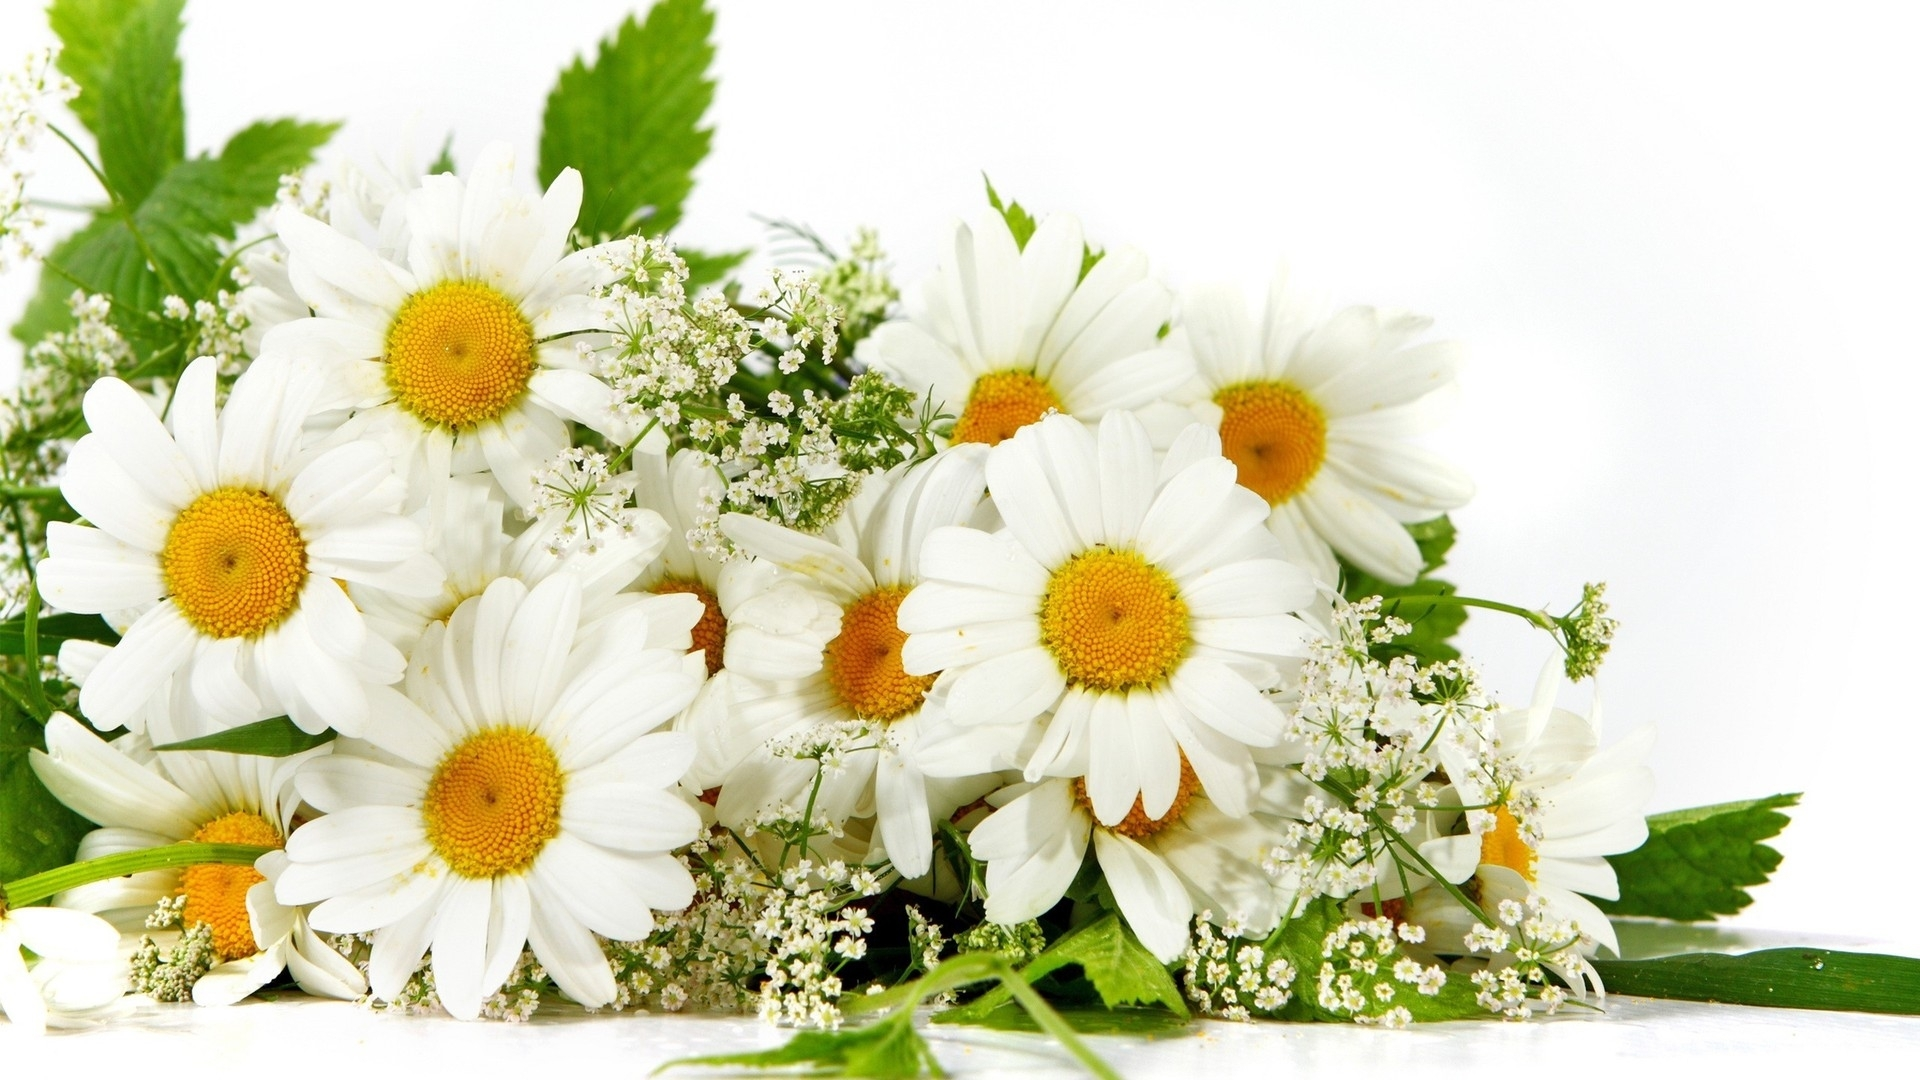 46451 download wallpaper Plants, Flowers, Camomile screensavers and pictures for free